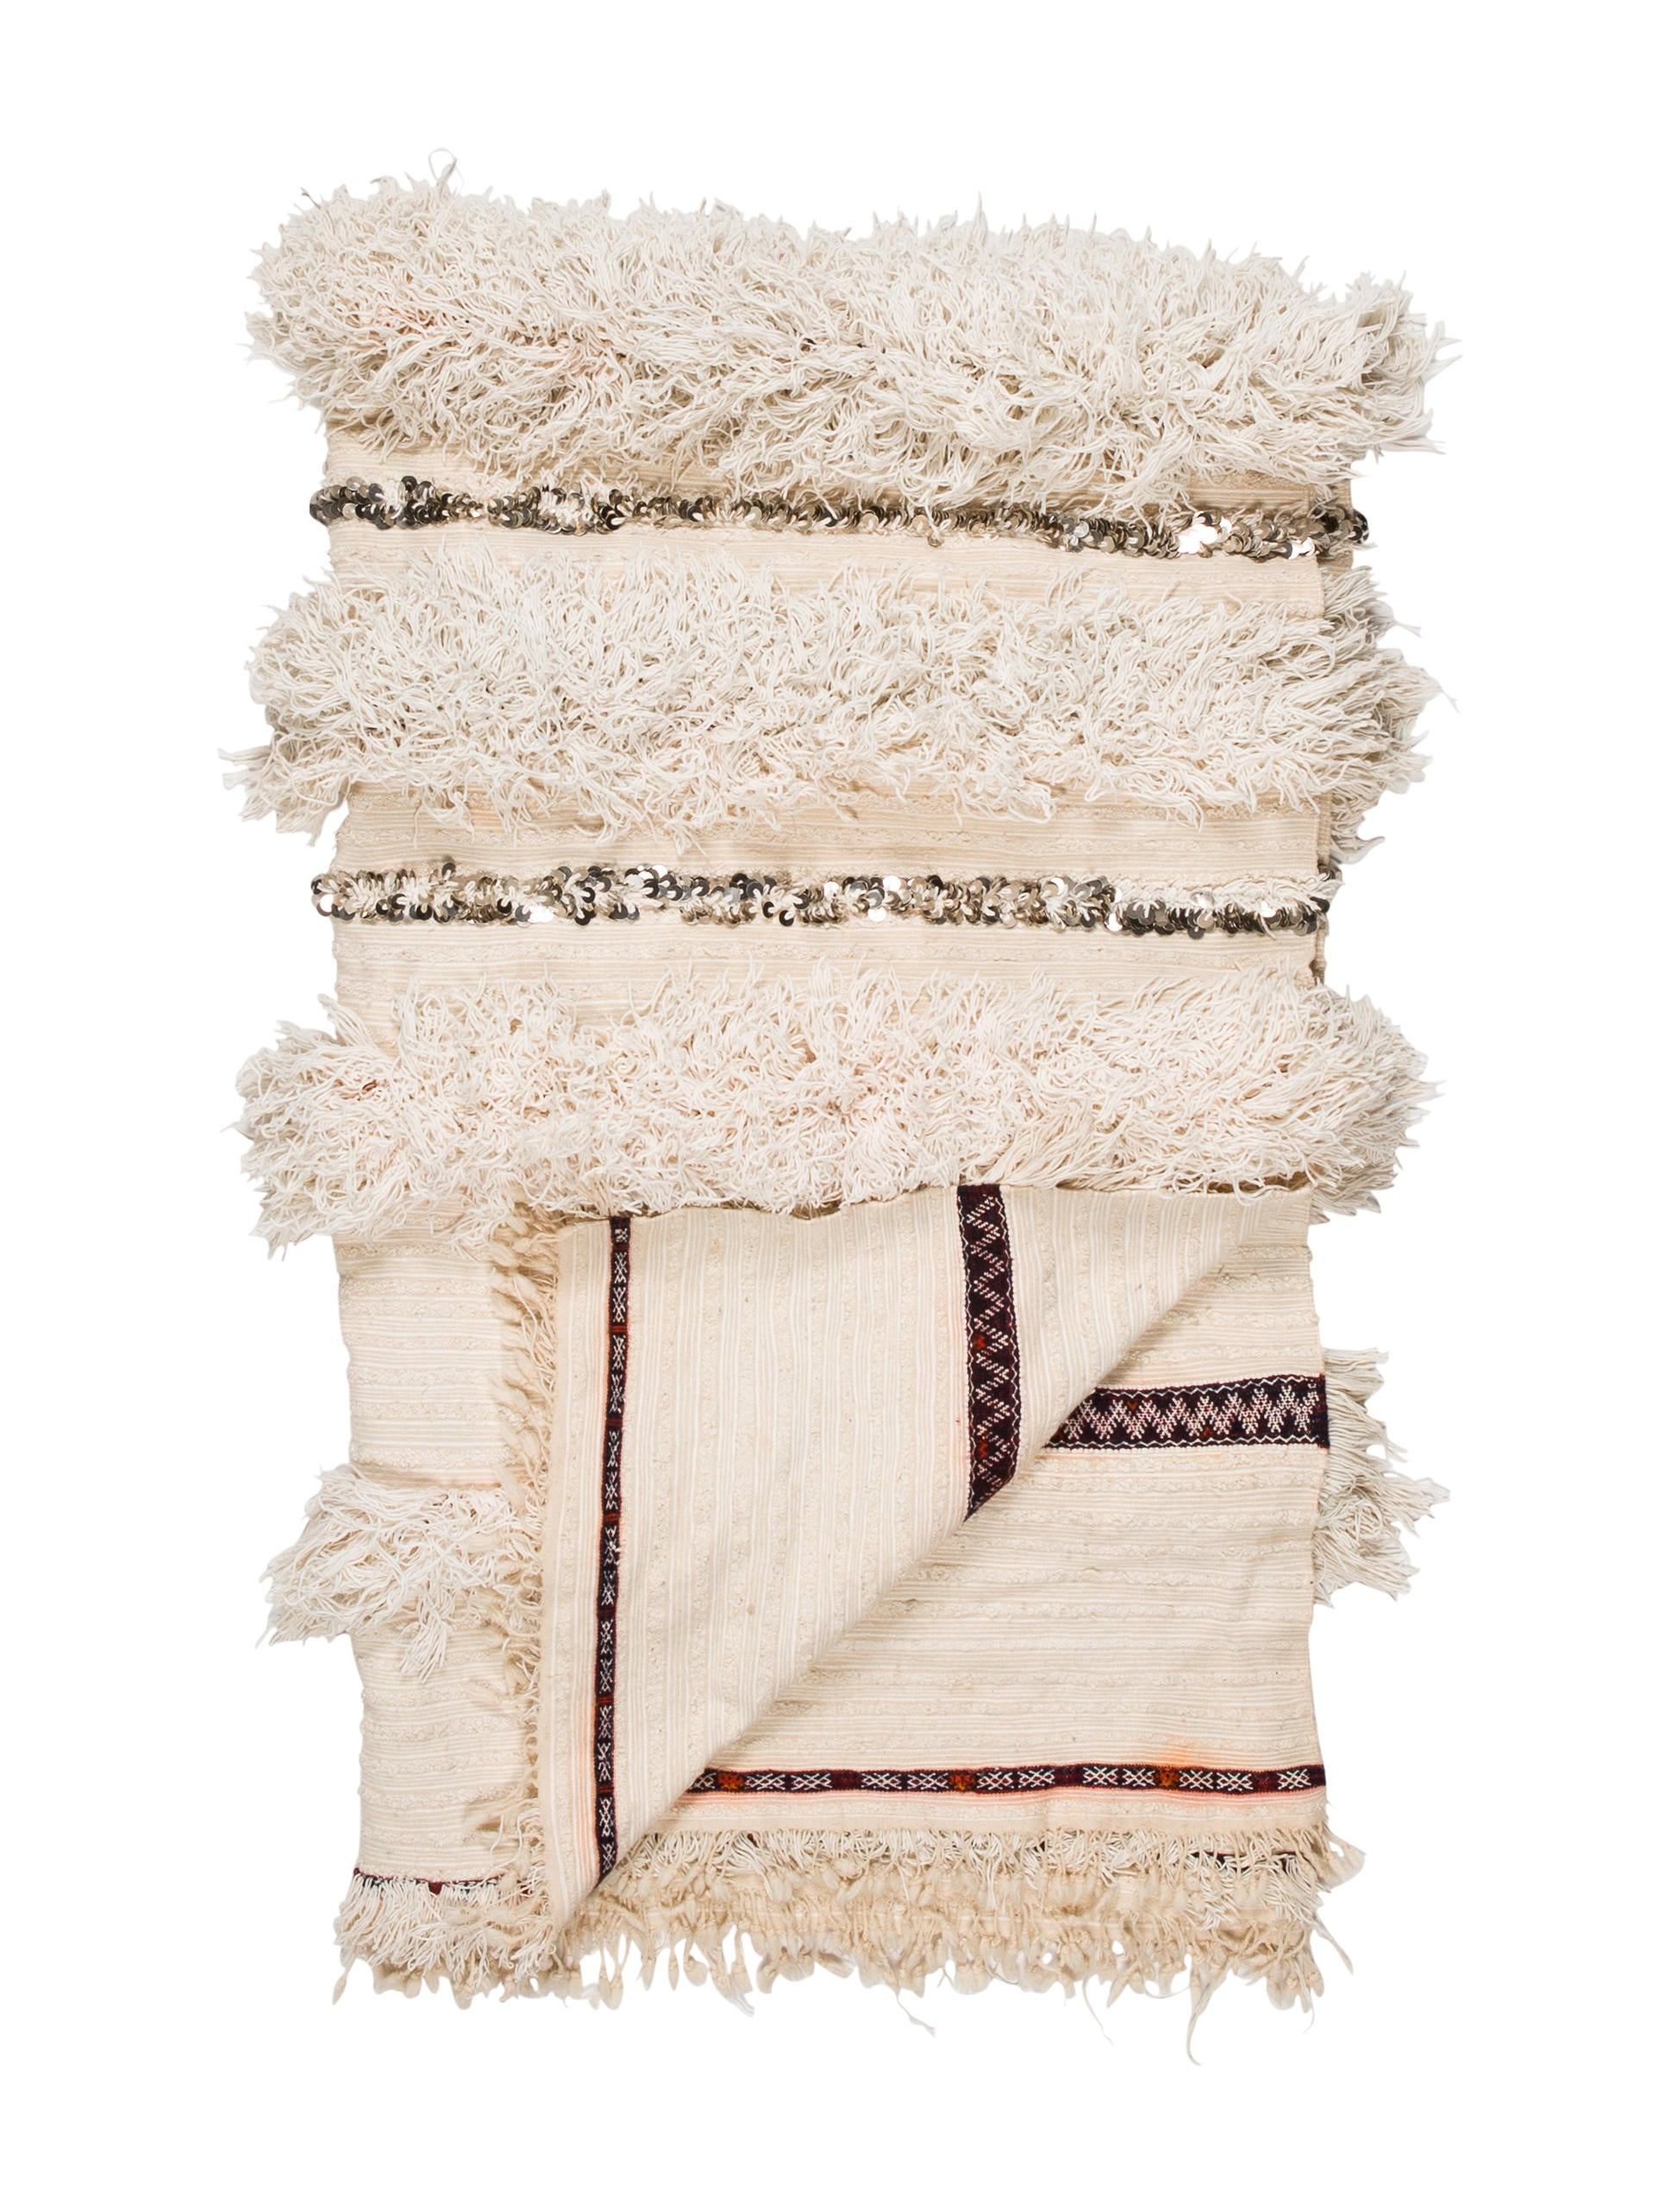 Soukie Modern Moroccan Wedding Blanket - Pillows And Throws - THROW20044 The RealReal